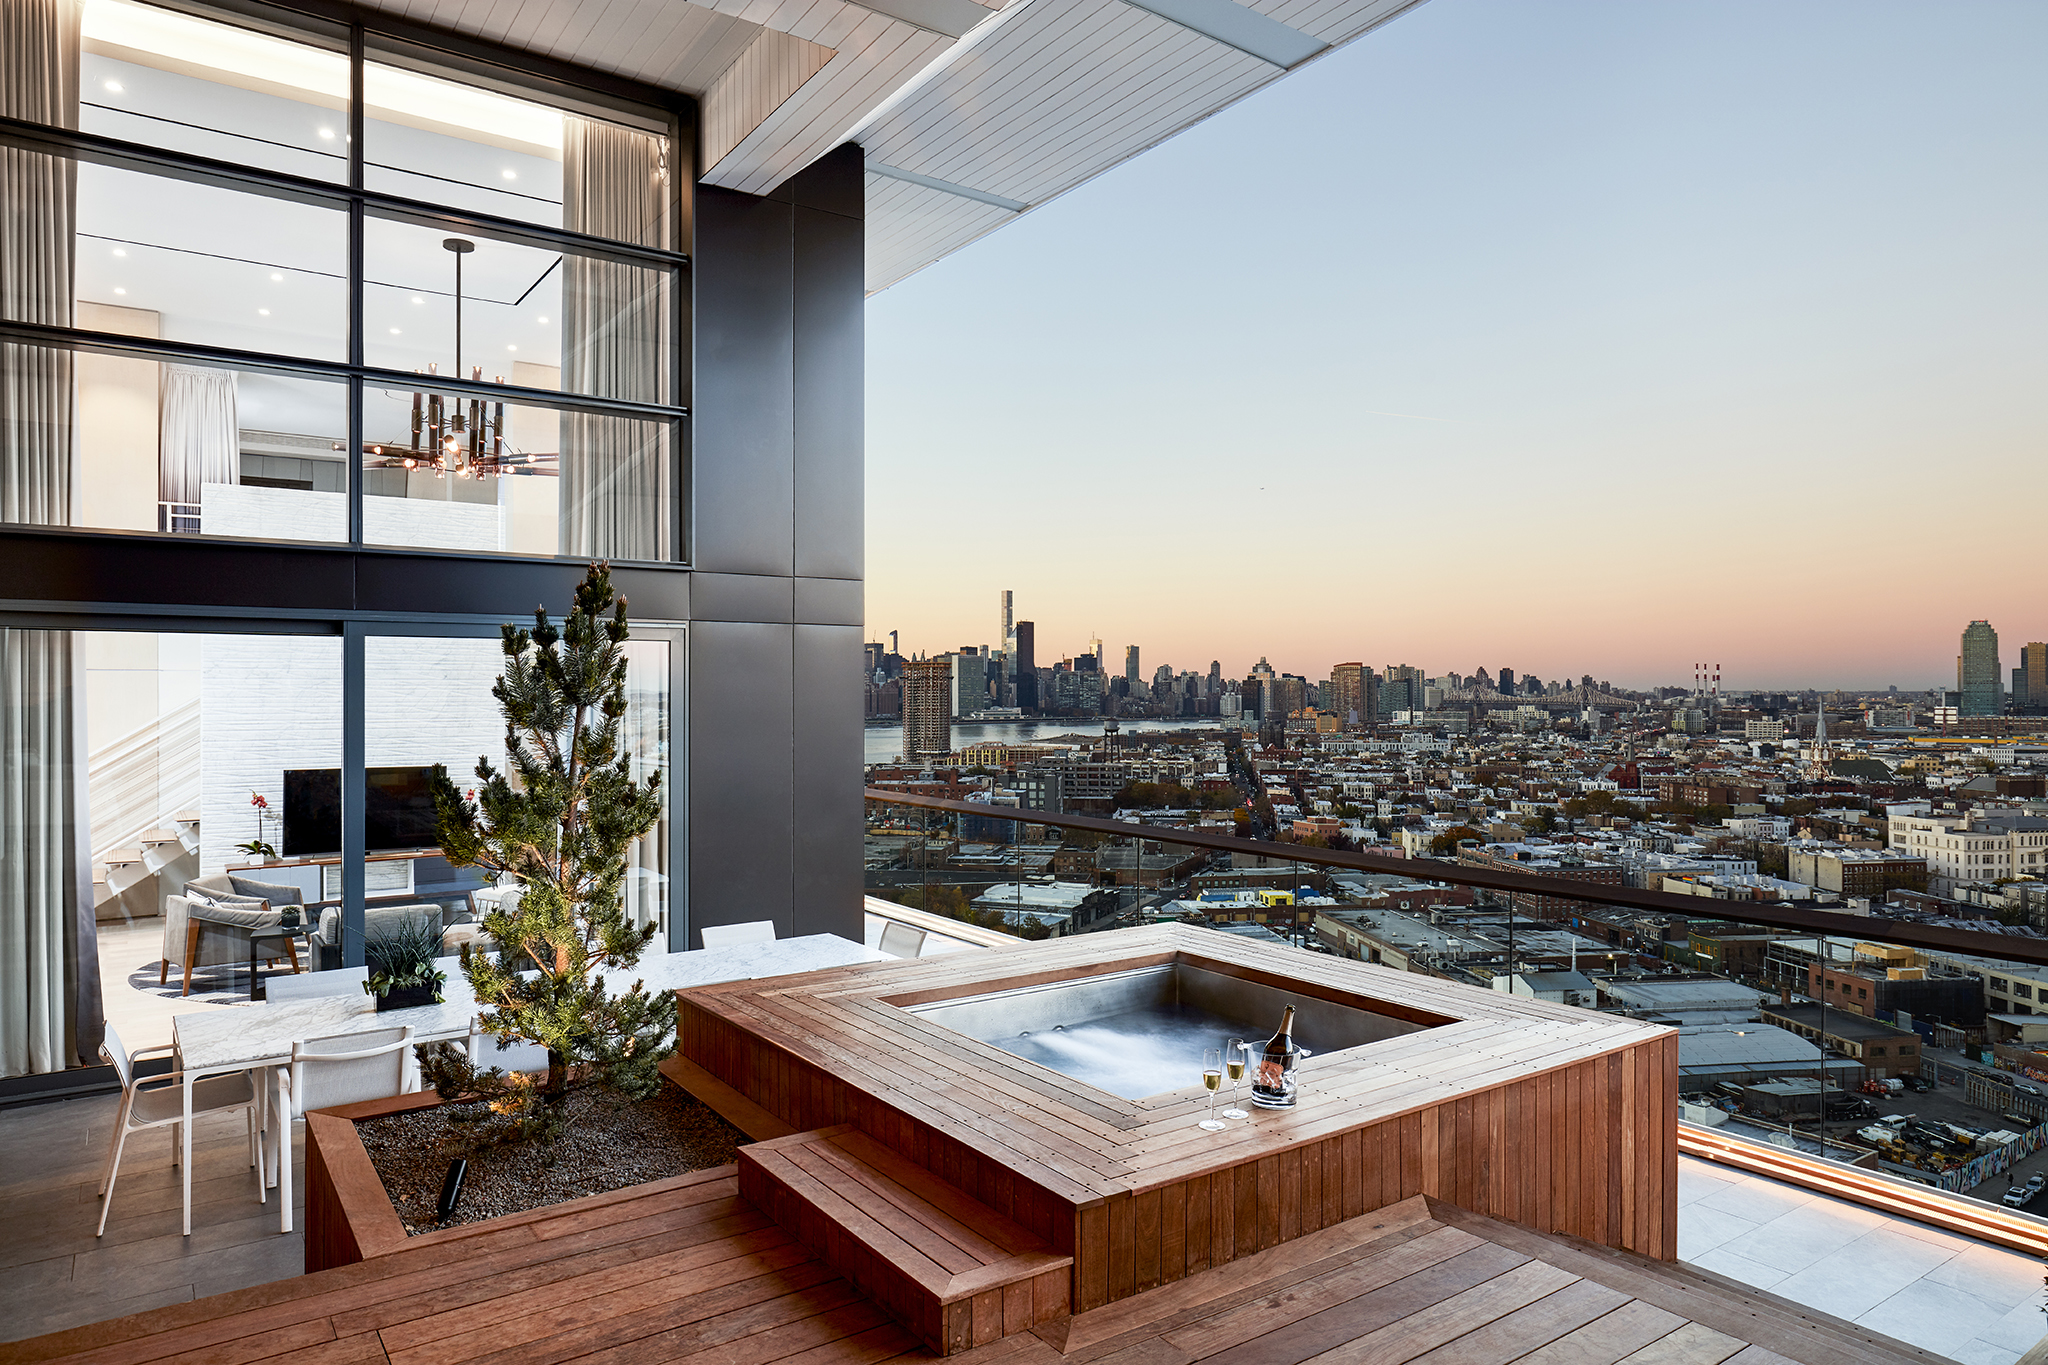 9 Best Nyc Hotels With Hot Tubs In Room For A Relaxing Trip